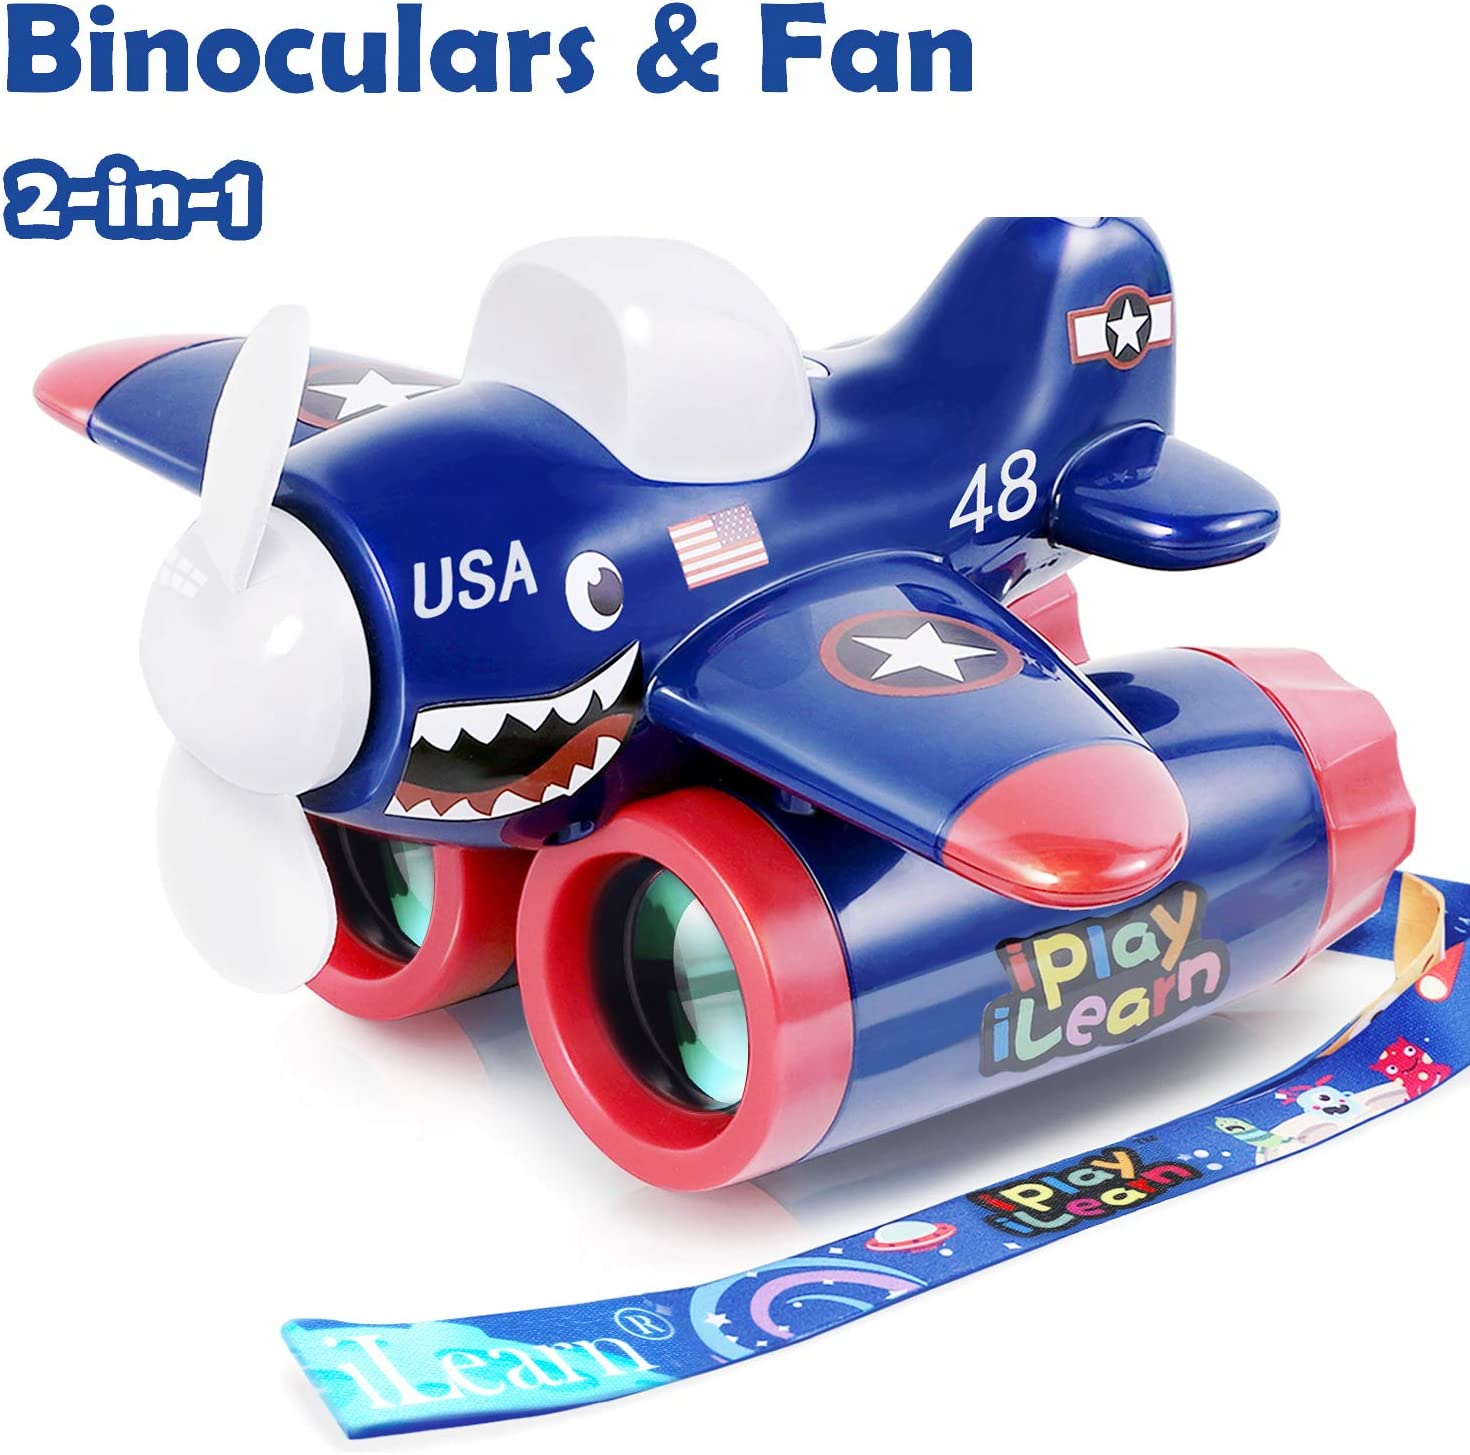 iPlay, iLearn 2 in 1 Kids Binocular & Handheld Fan, Backyard Camping Games, Bird Watching, Nature Explore Learning Kids Airplane Binoculars Toy, Gifts for 3 4 5 6 7 Year Old Boy Girl Toddlers Child